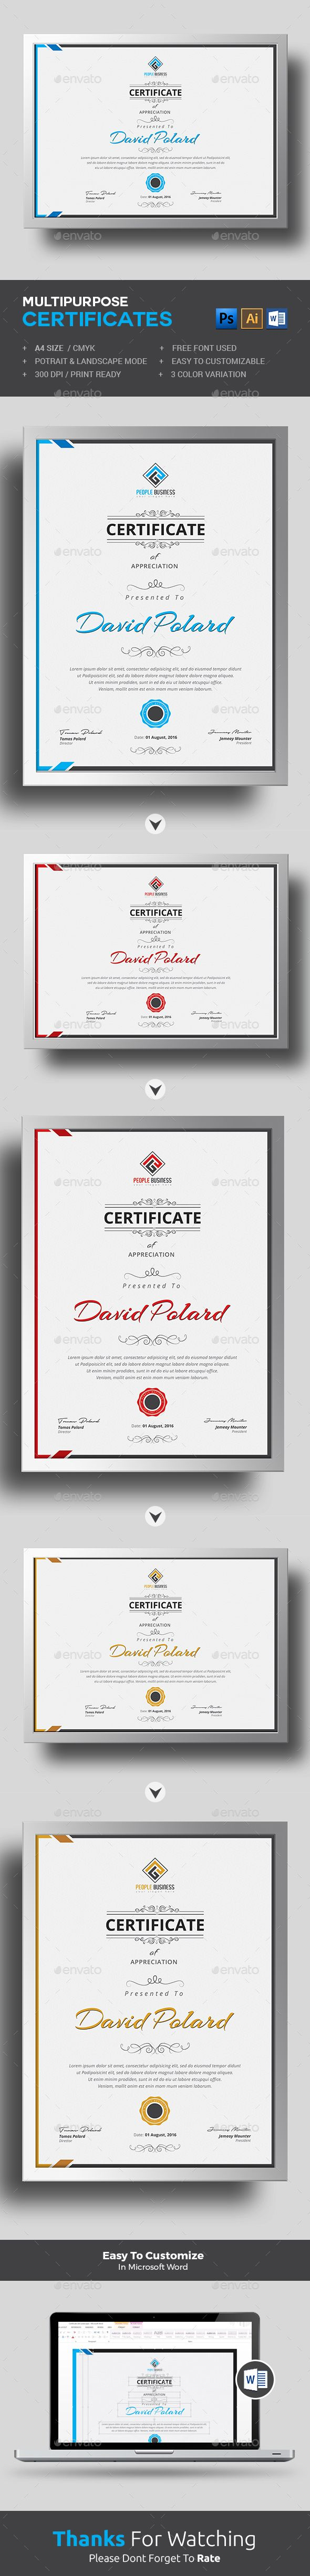 Certificate Template suitable for any business, company or institution on completion of any course, training ,degree or job well done! Download  https://graphicriver.net/item/certificate/17623087?ref=themedevisers